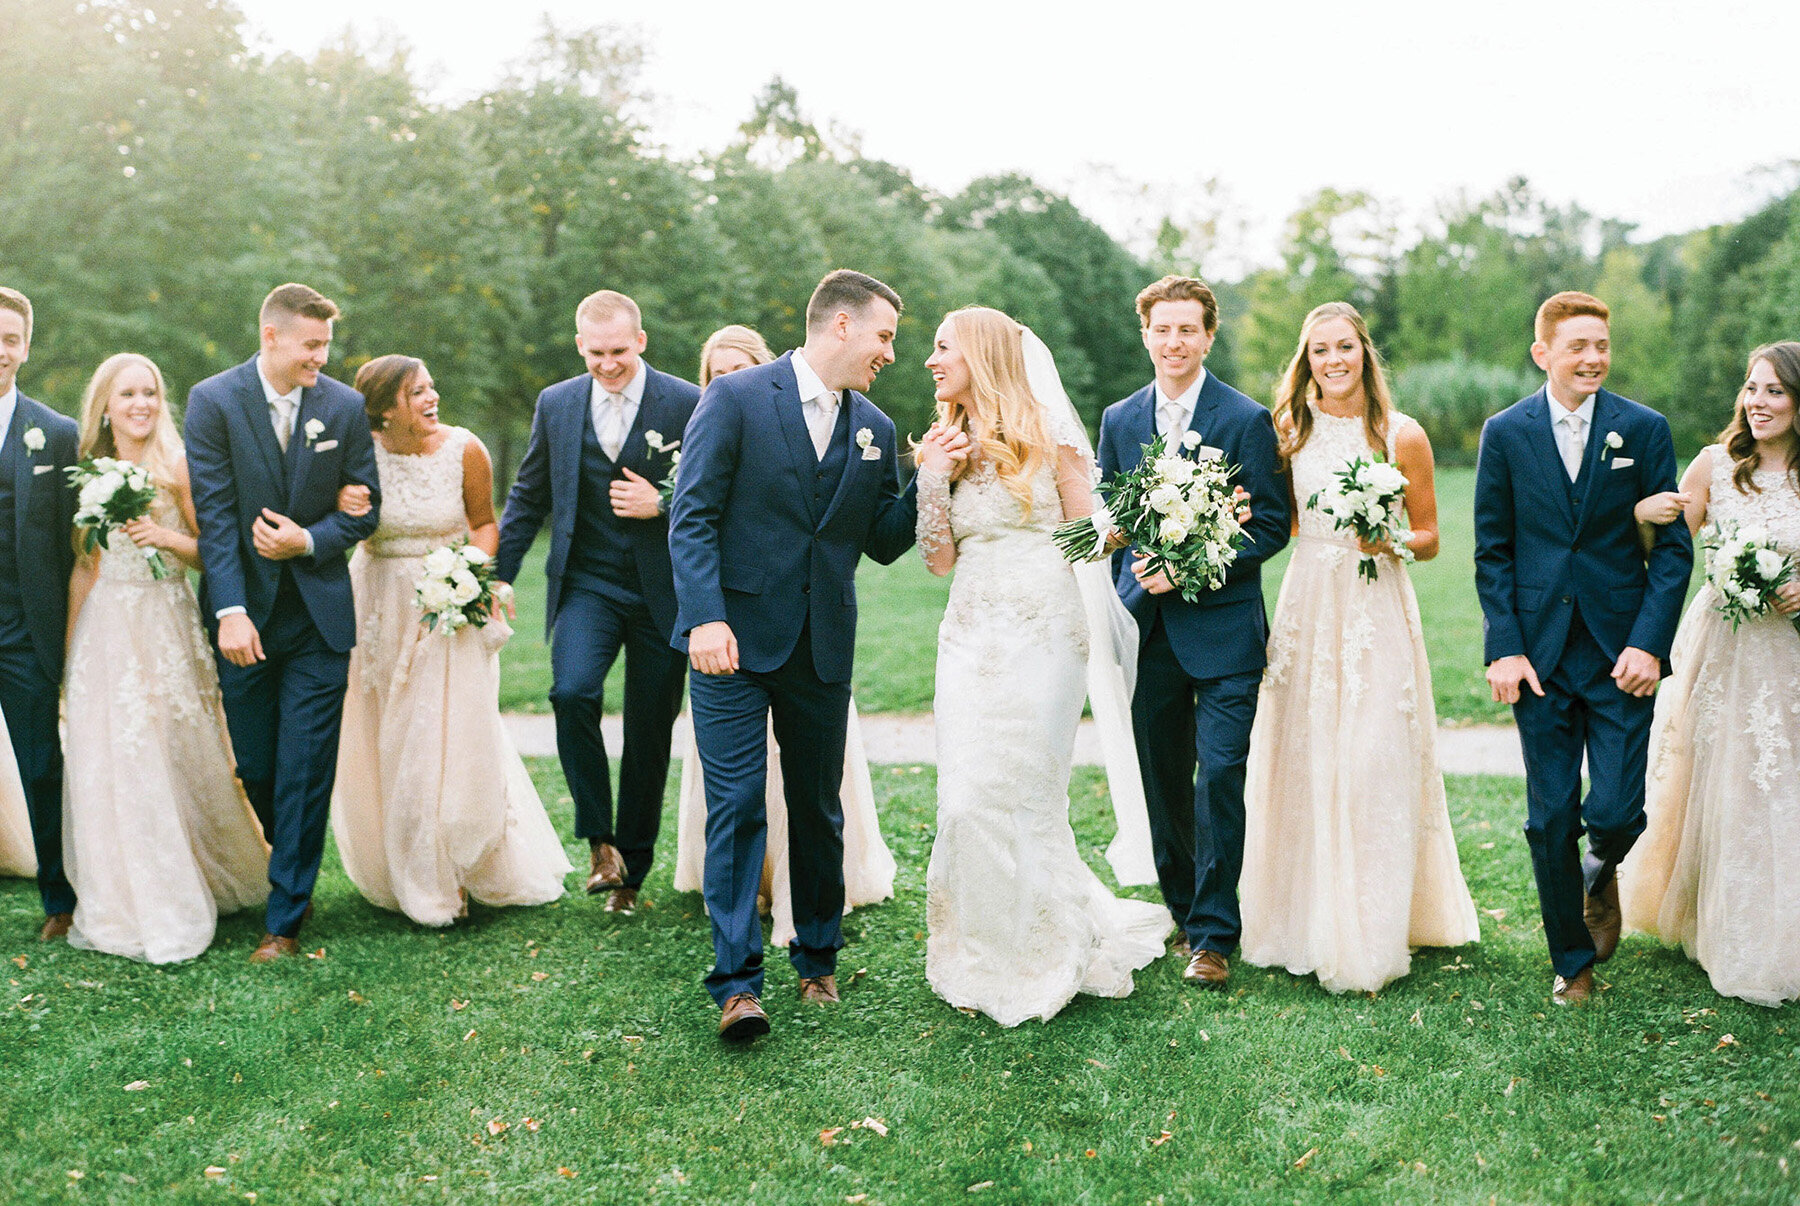 Megan + Nick - We can't decide if we love the bride's gown or the bridesmaids dresses more.